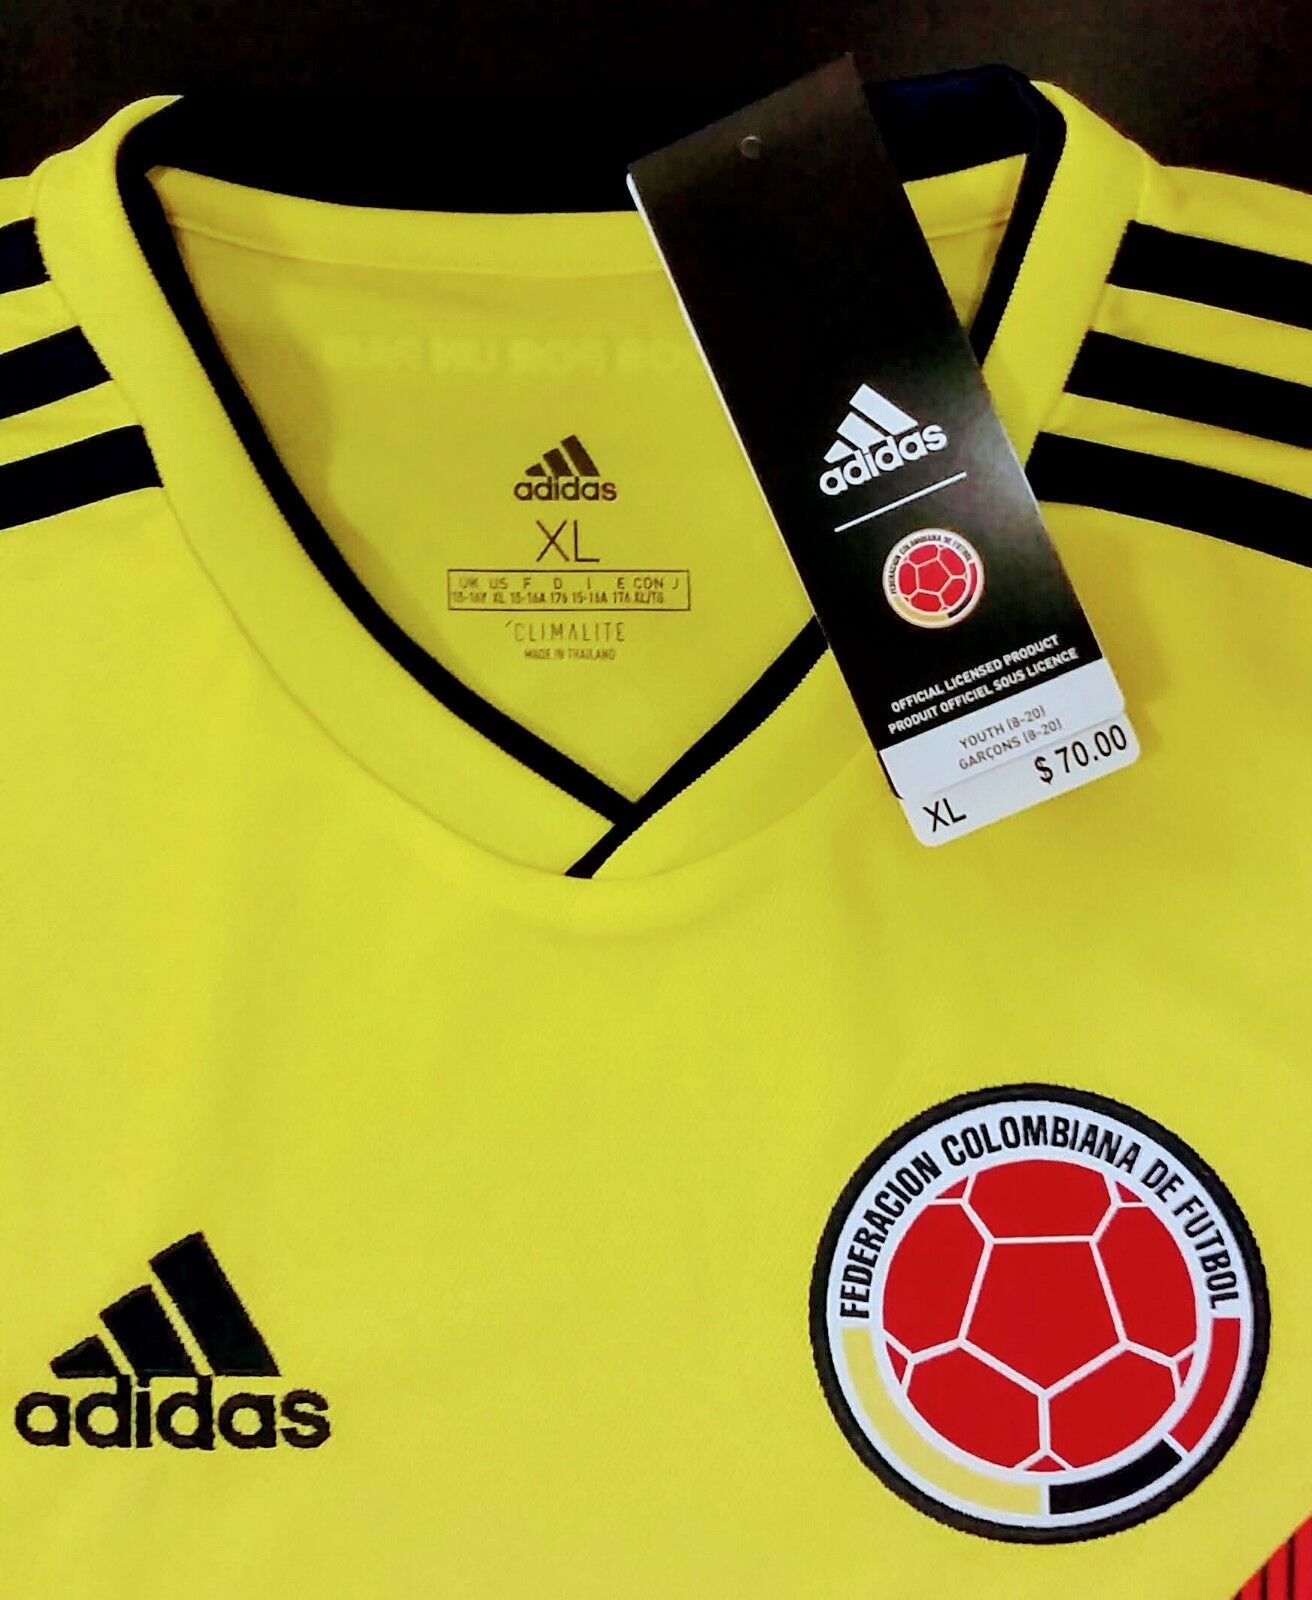 cheap for discount 056ae bffcf SOCCER YOUTH NEW ADIDAS JERSEY JERSEY JERSEY COLOMBIA TEAM ...